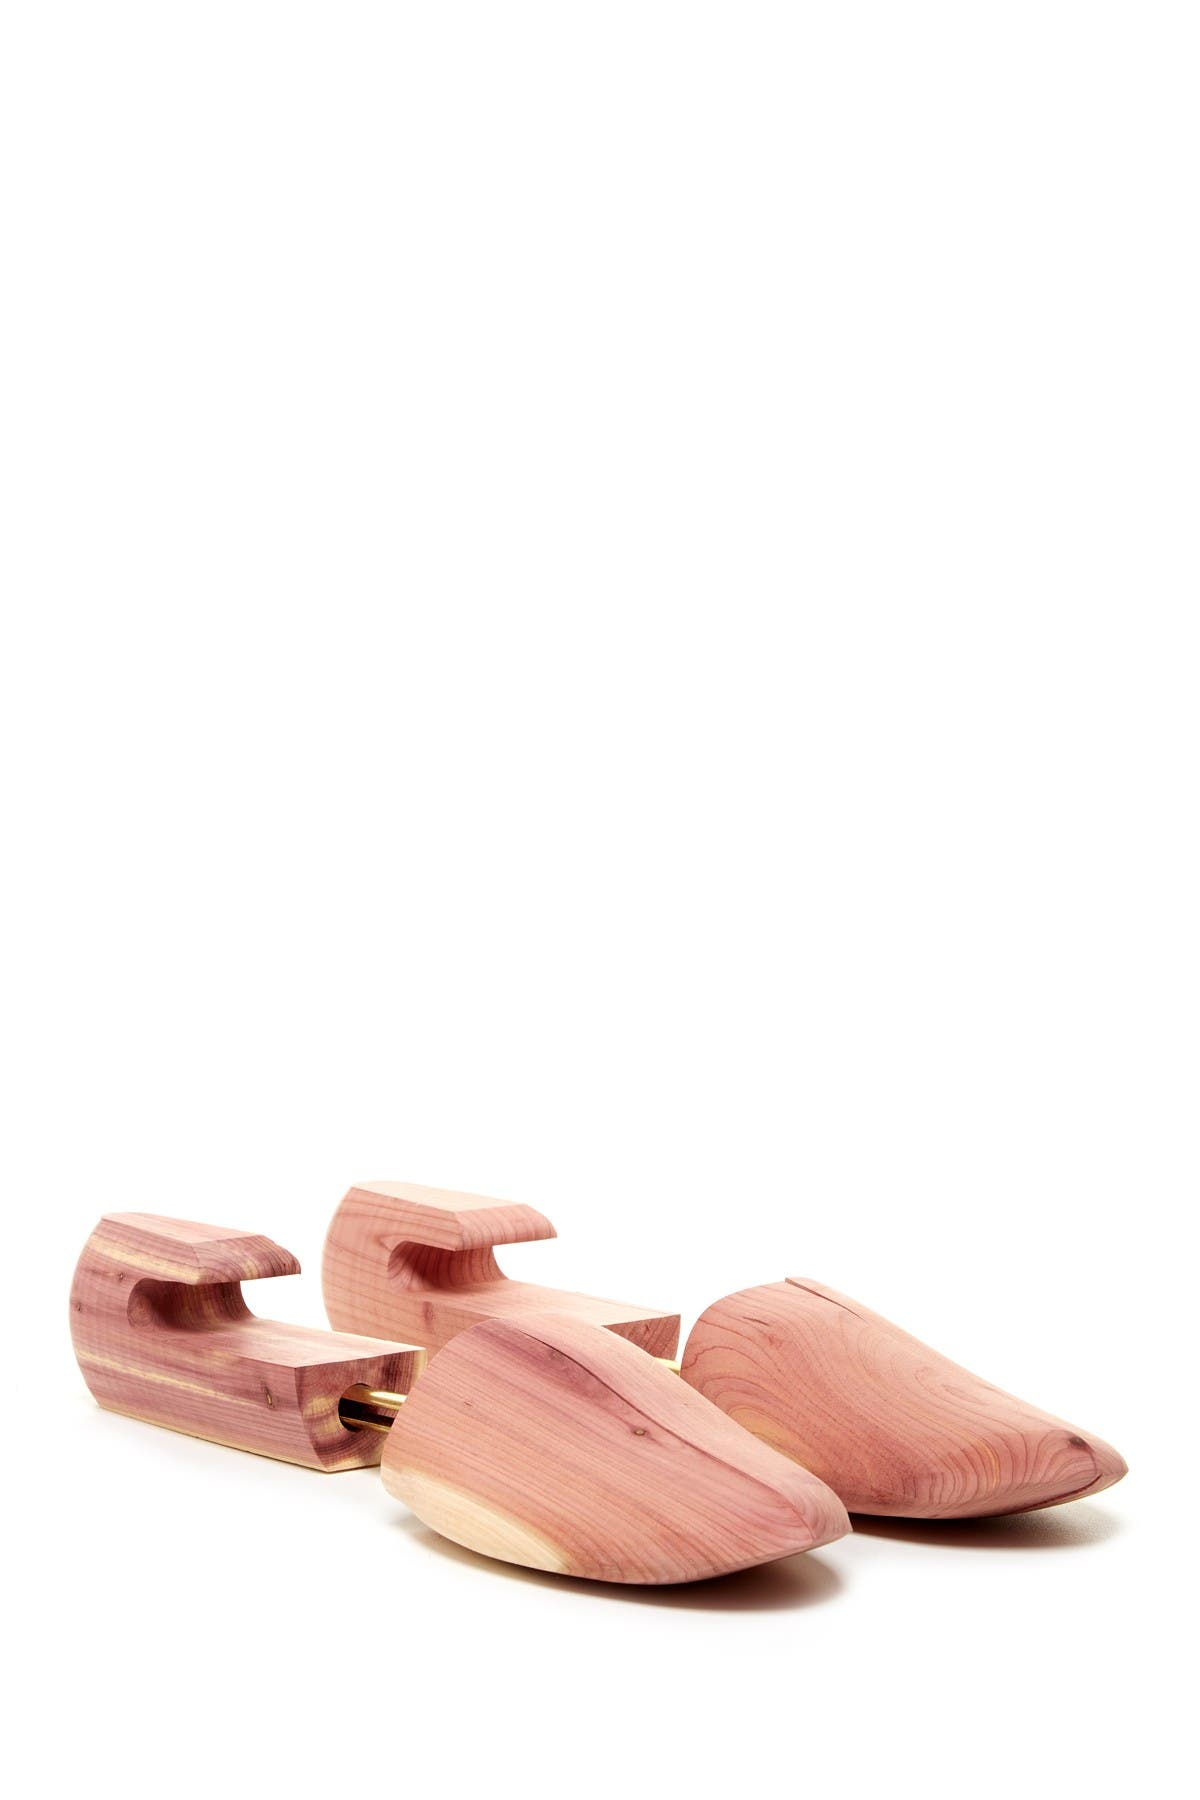 Image of Nordstrom Rack Aromatic Cedar Shoe Trees - Extra Extra Large